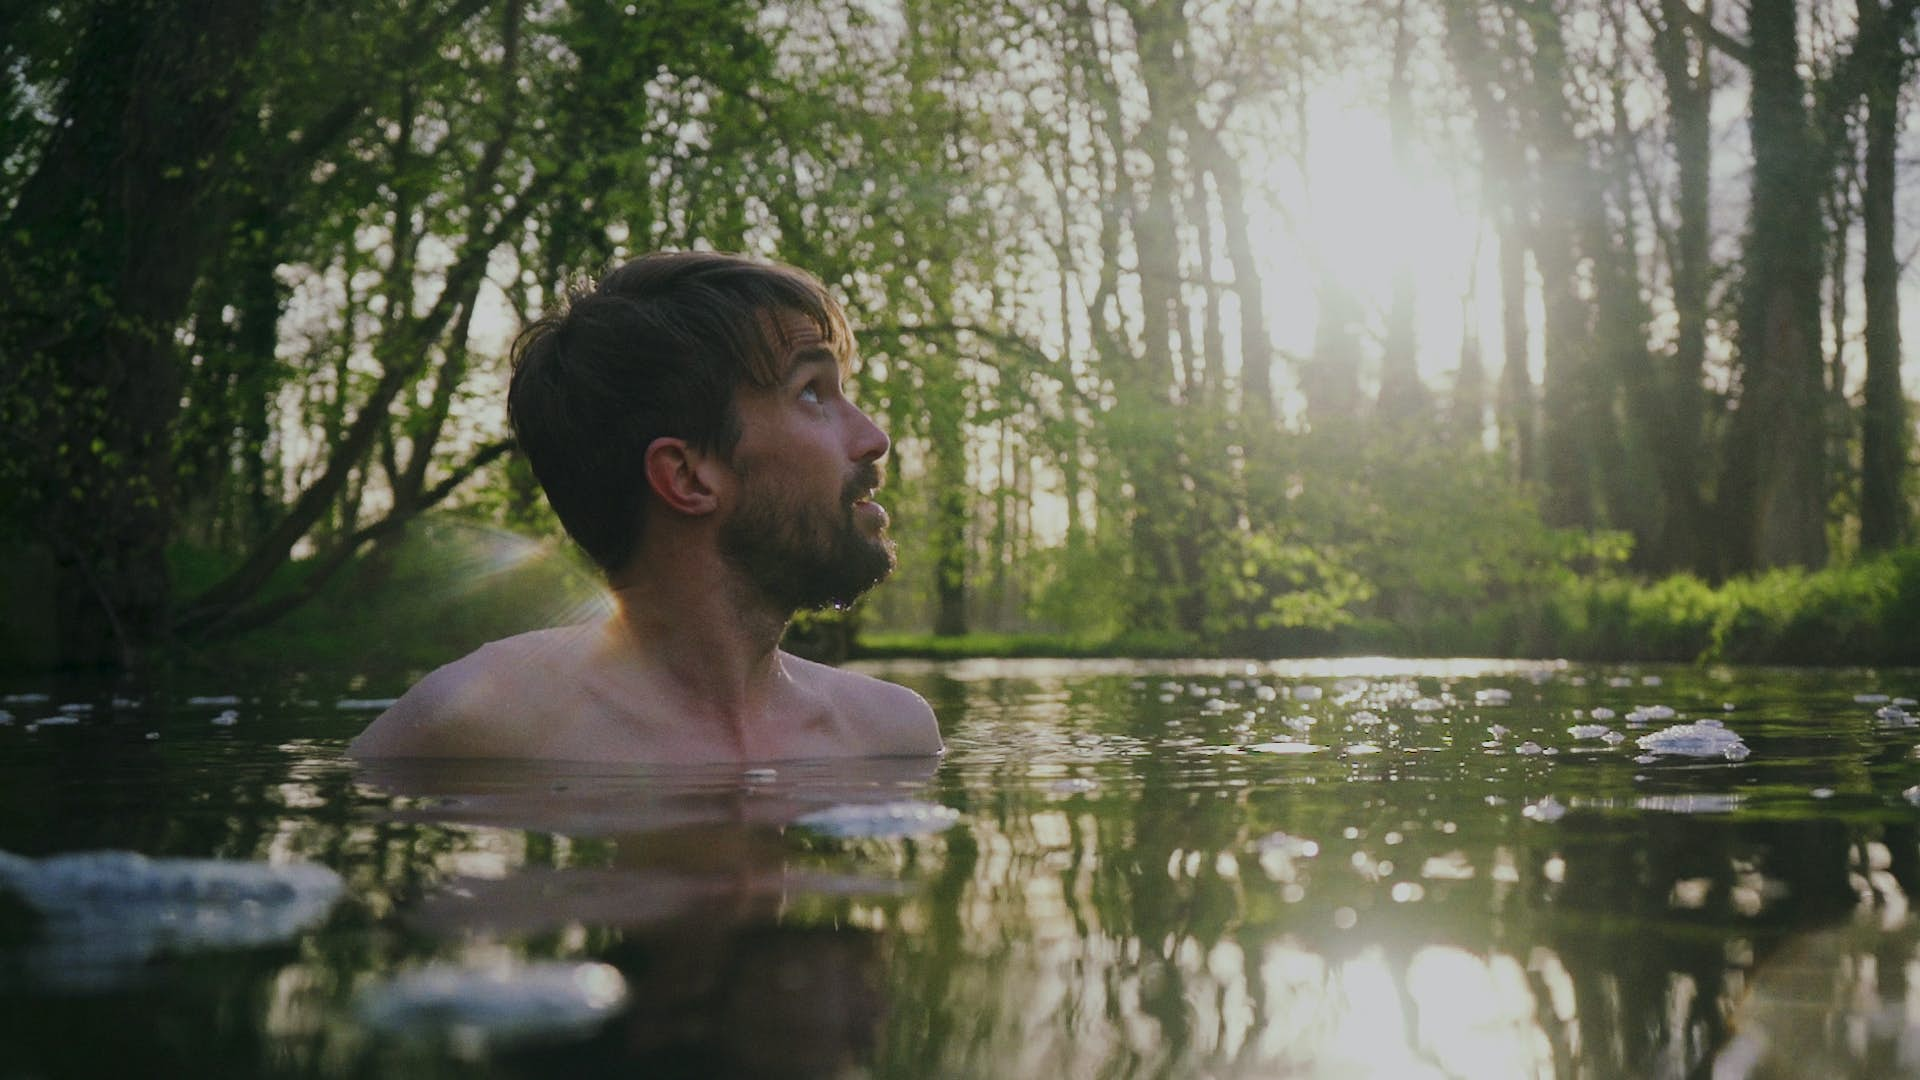 Take the plunge: the best wild swimming spots in the UK and Ireland